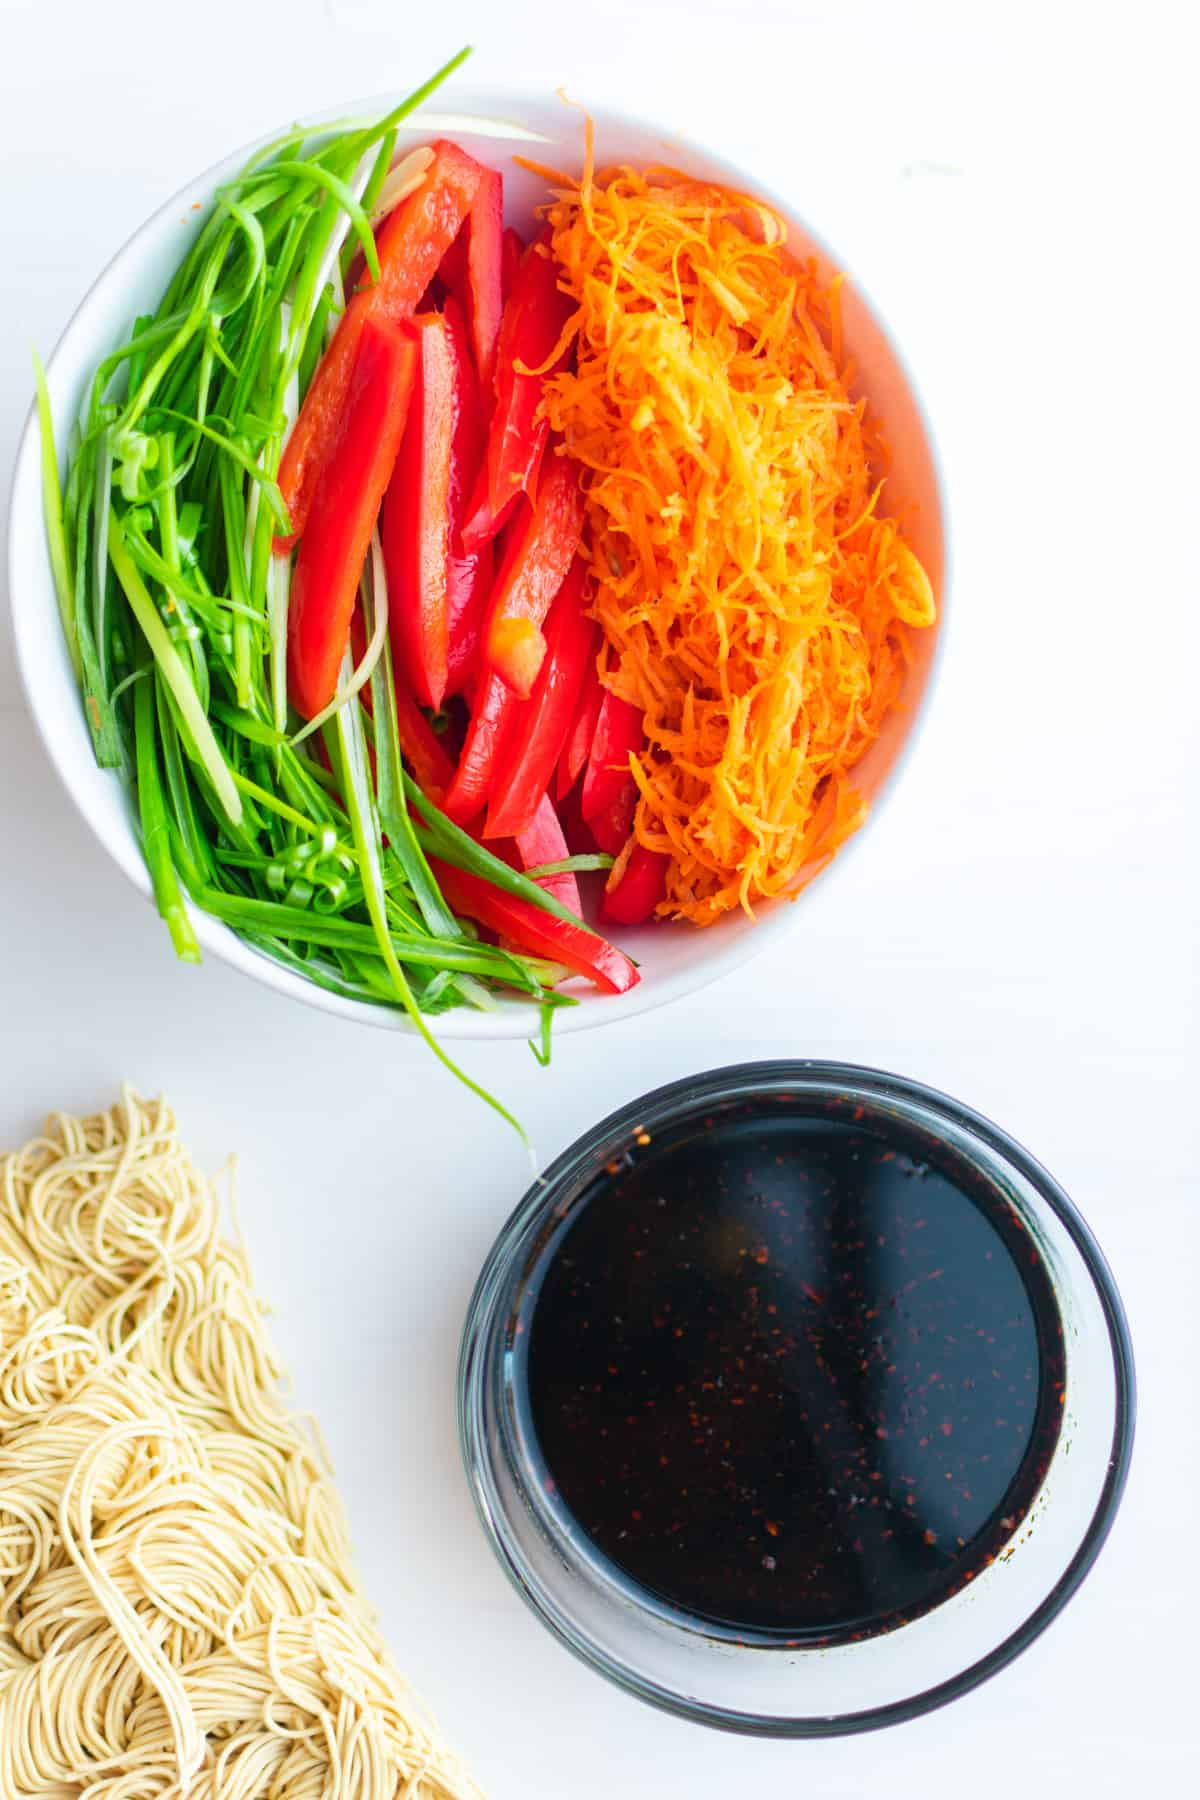 A bowl of shredded carrots, sliced paprika, and sliced green onion. A bowl of Kung Pao Noodles sauce and some raw noodles on the side.